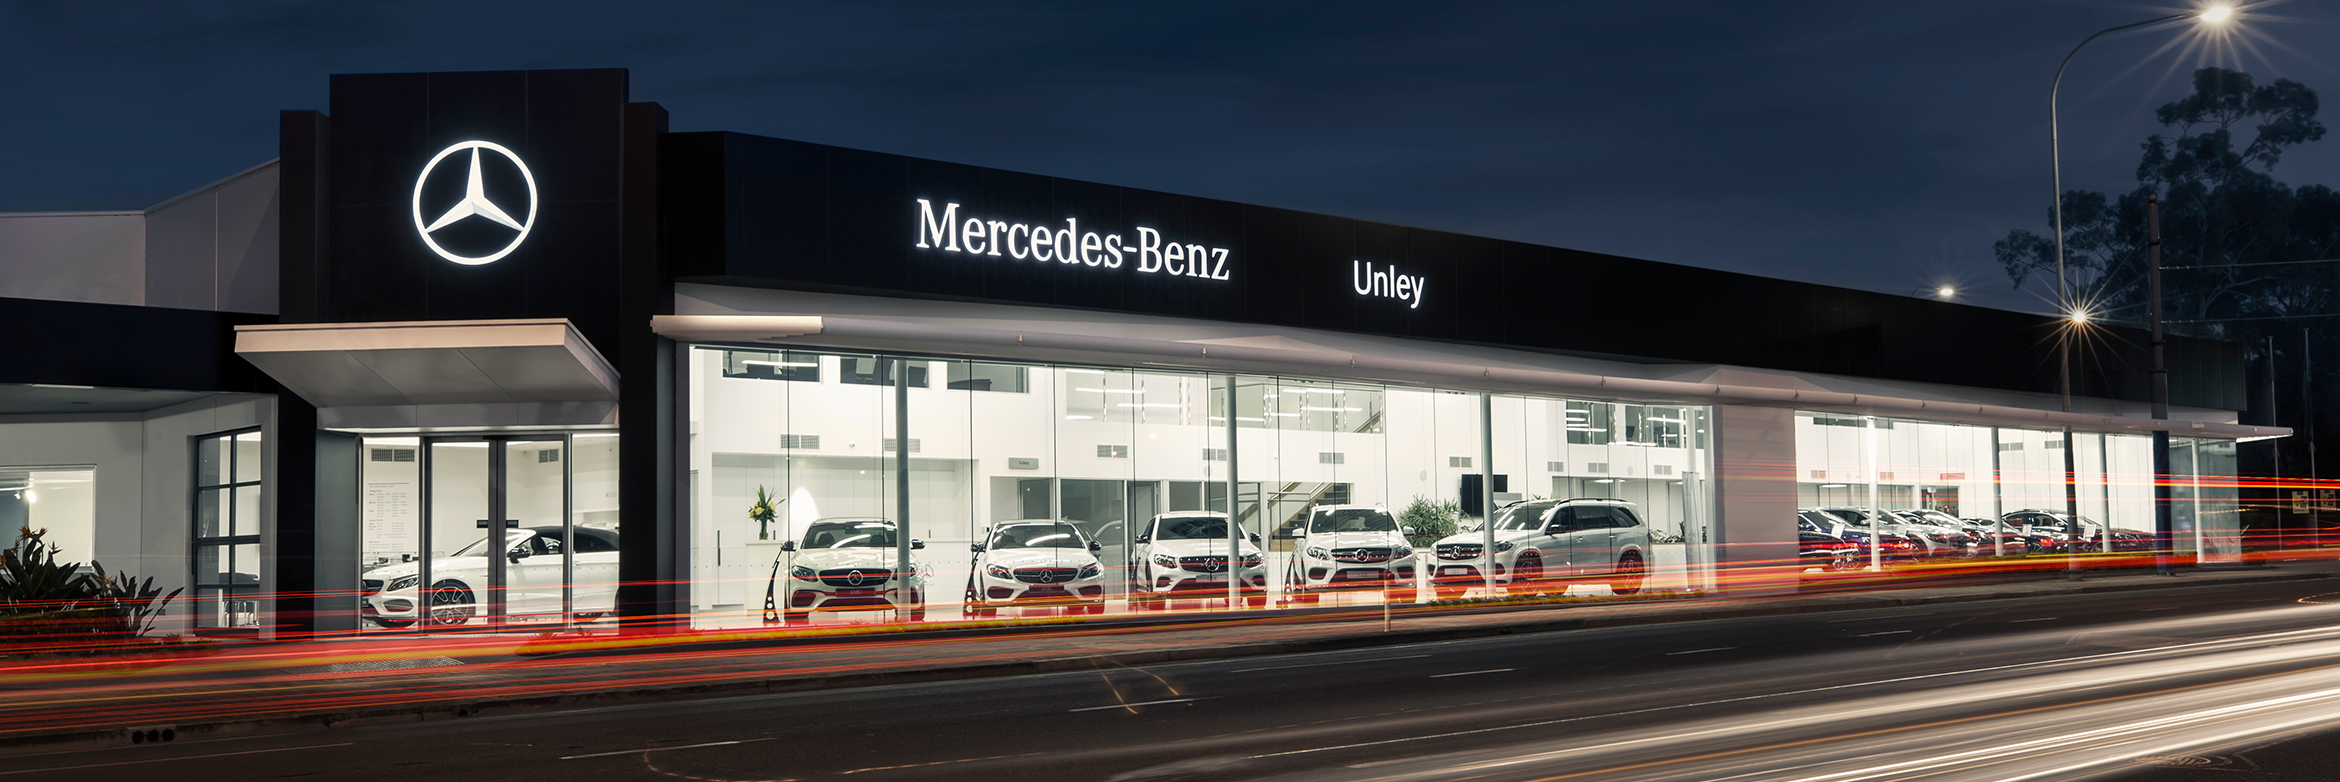 Mercedes-Benz Unley - CMV Group